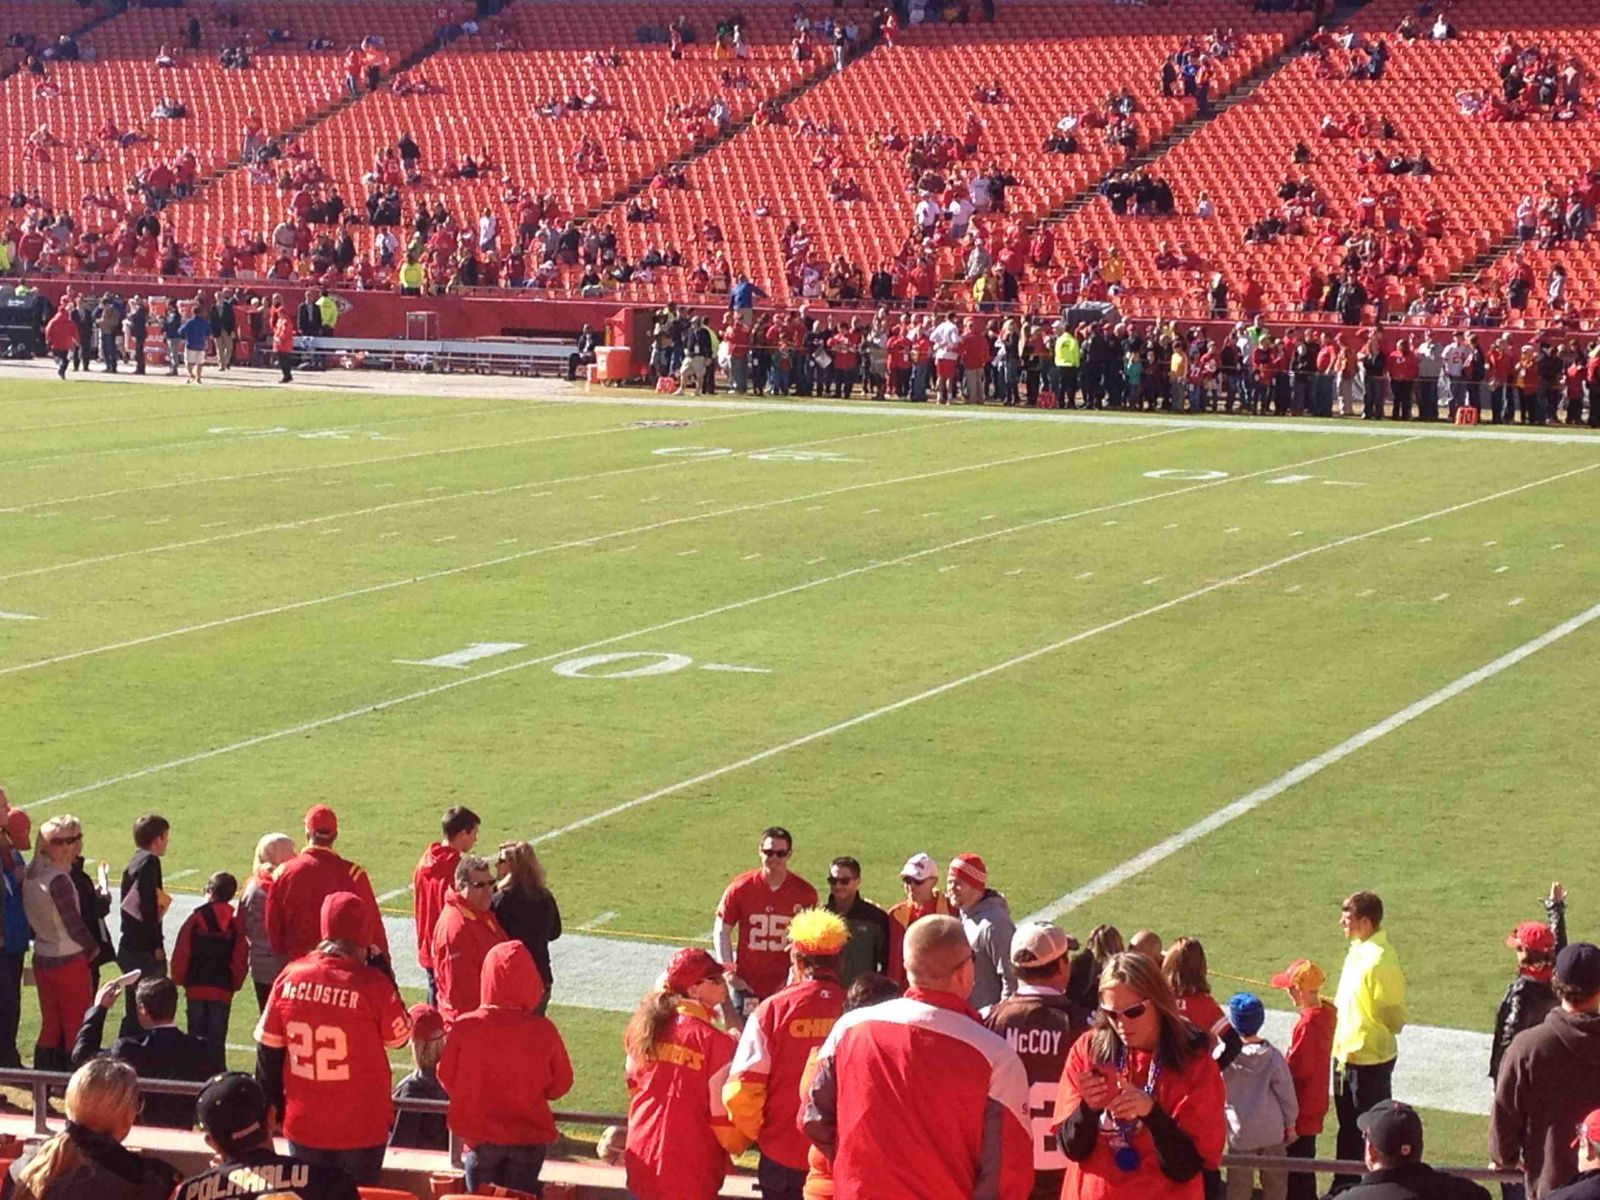 Seat View for Arrowhead Stadium Section 133, Row 18, Seat 4